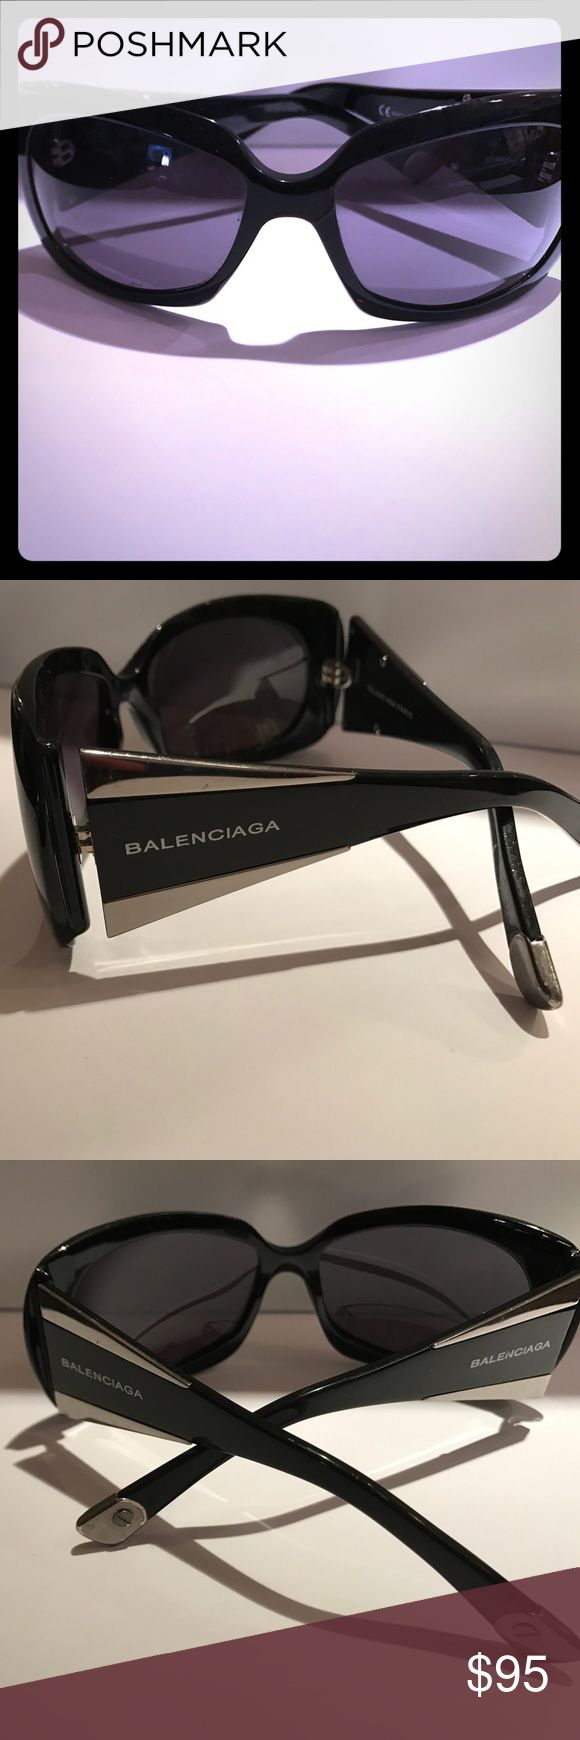 Balenciaga sunglasses Black BALENCIAGA sunglasses. The brand is listed on either side of the frame and there is silver hardware on the end. Balenciaga Accessories Sunglasses